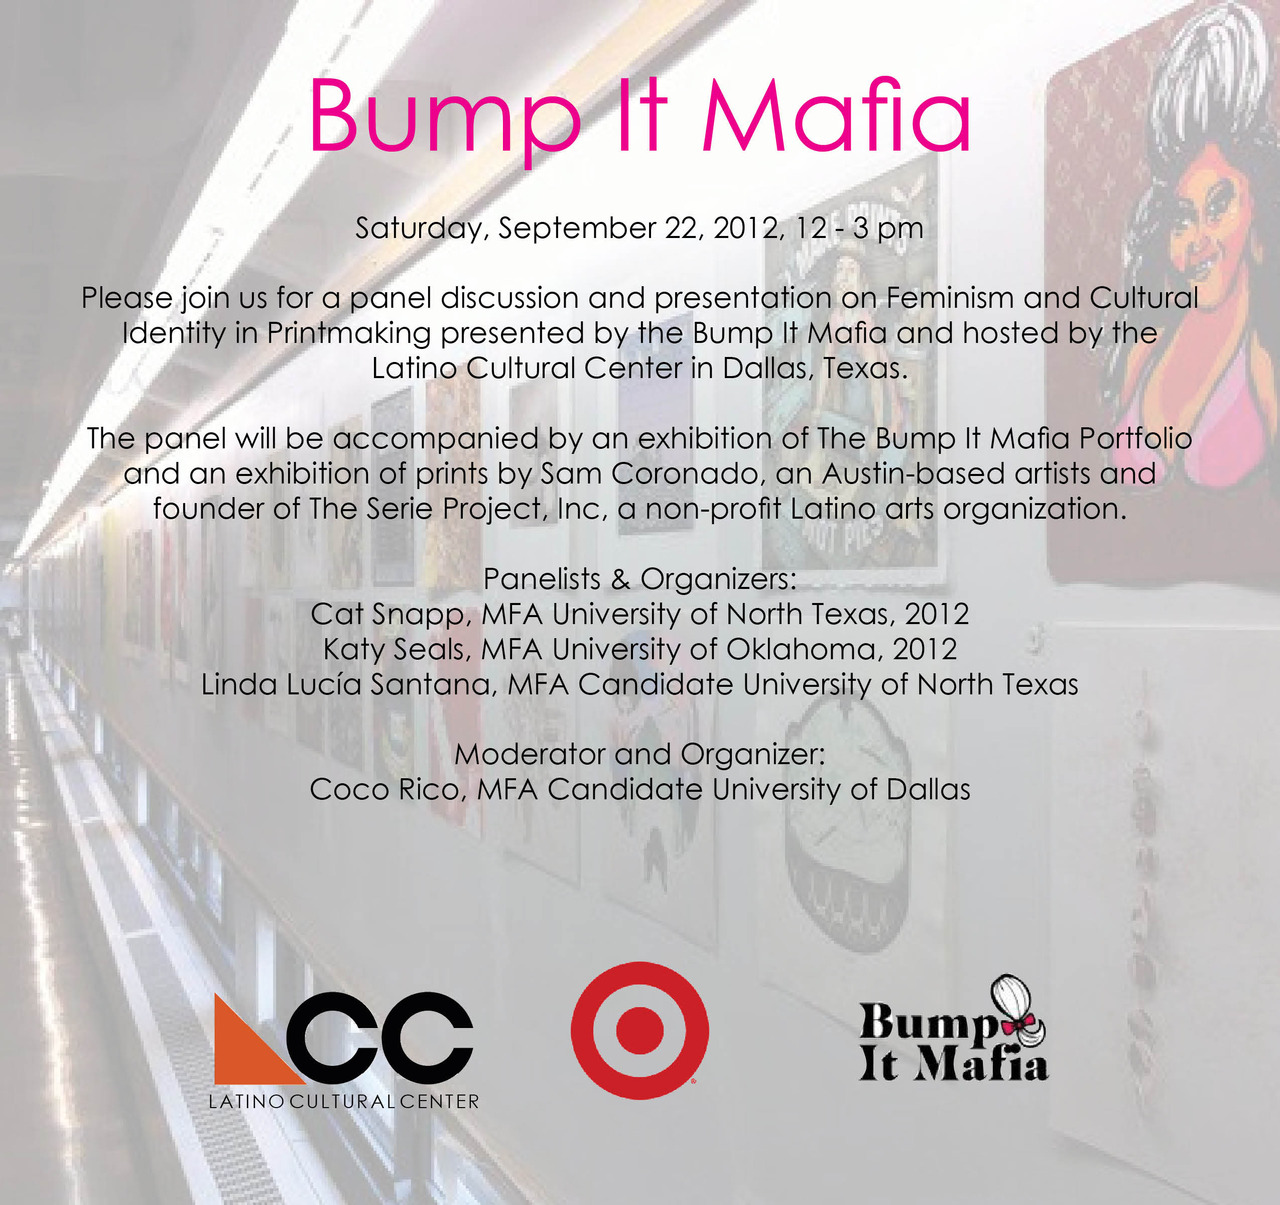 bumpitmafia: Flyer for our upcoming event!